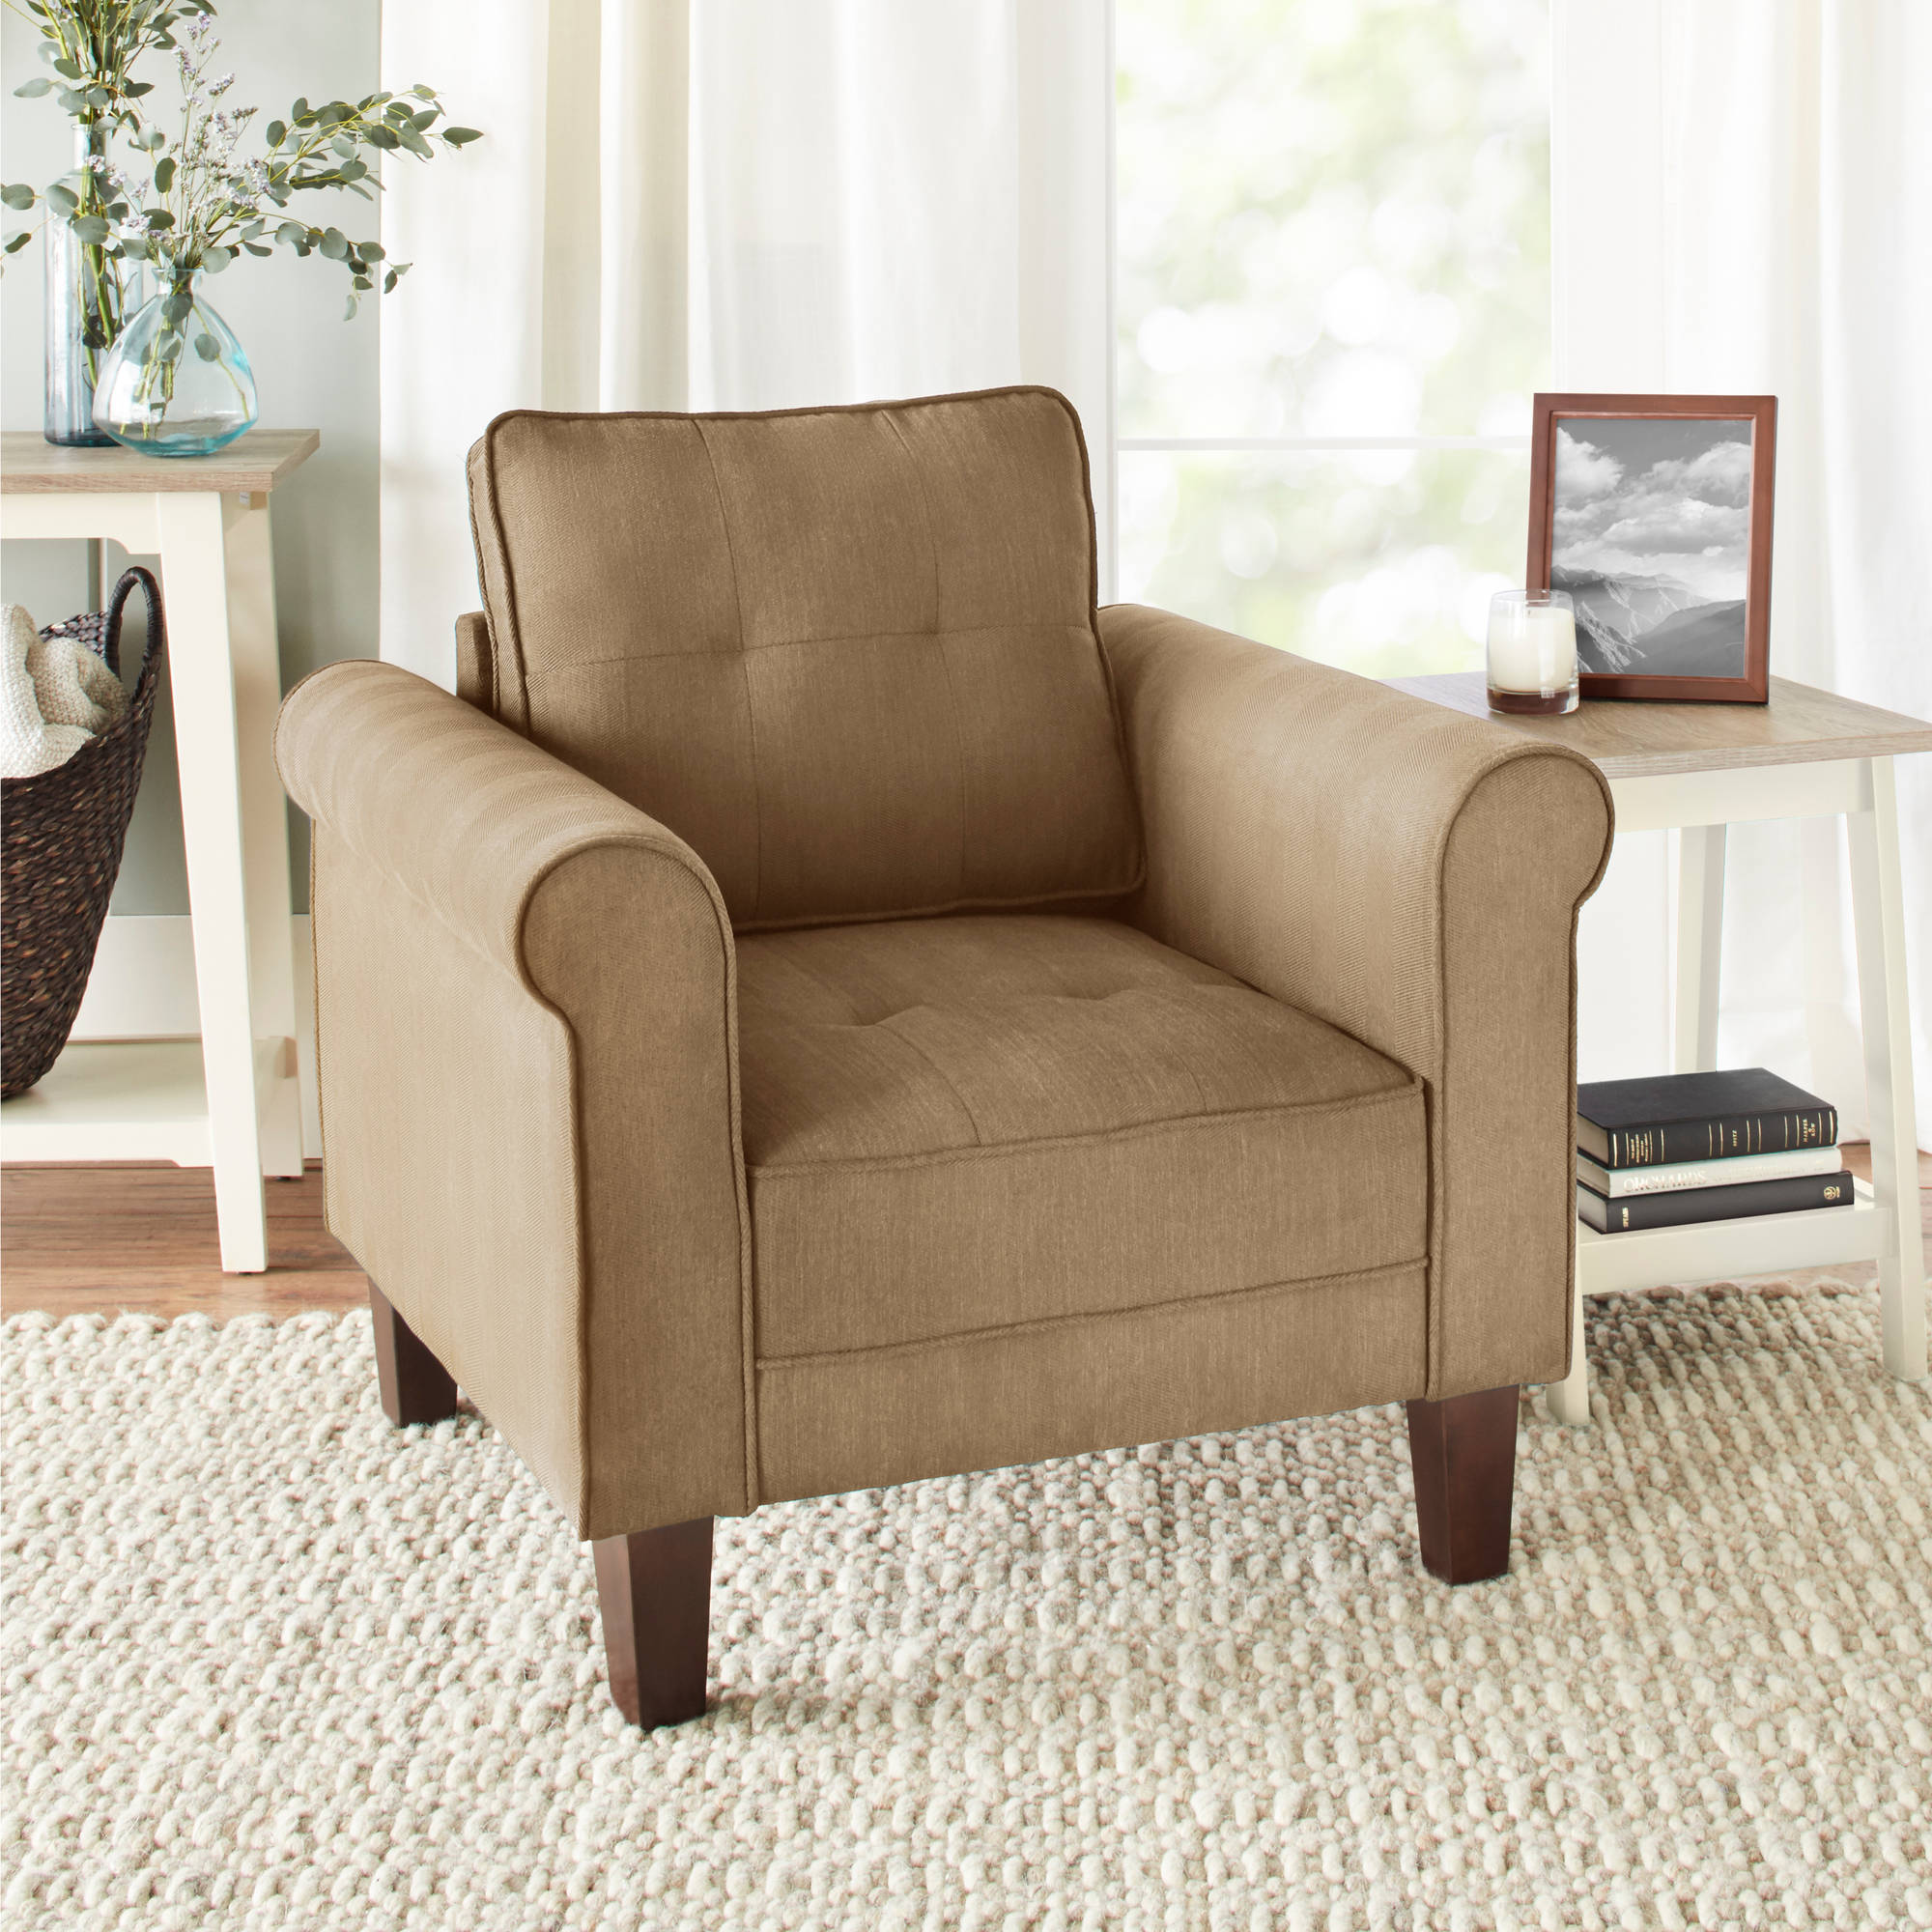 10 Spring Street Ashton Lounge Chair, Multiple Colors